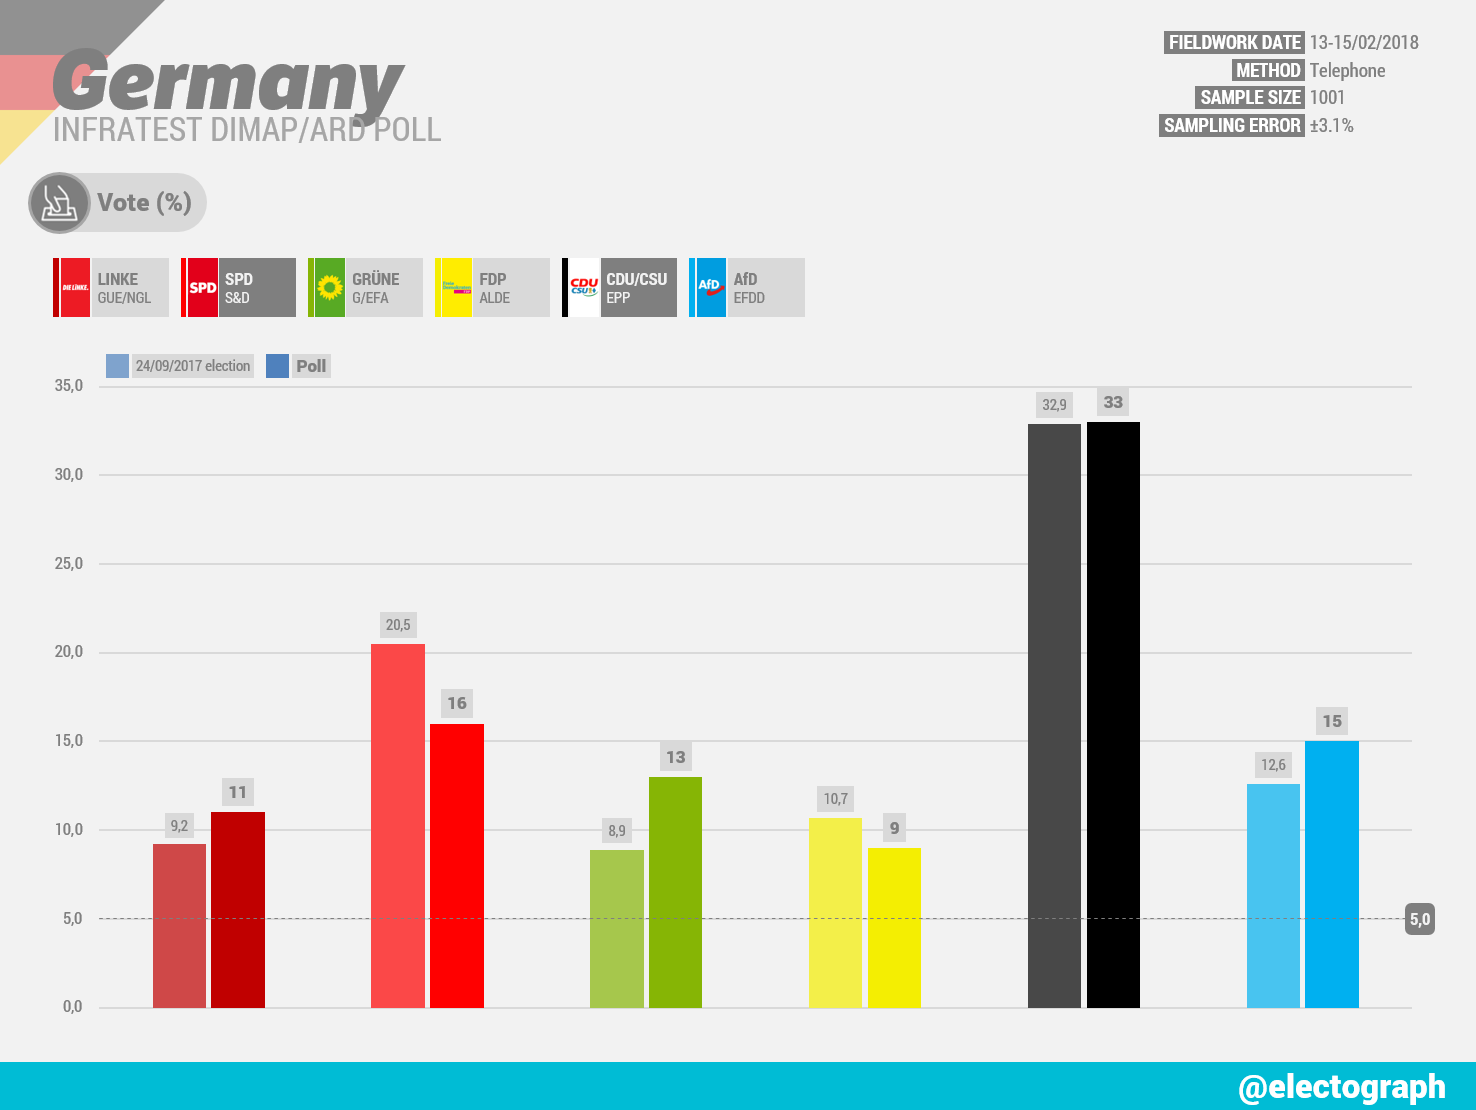 GERMANY Infratest dimap poll chart for ARD, February 2018